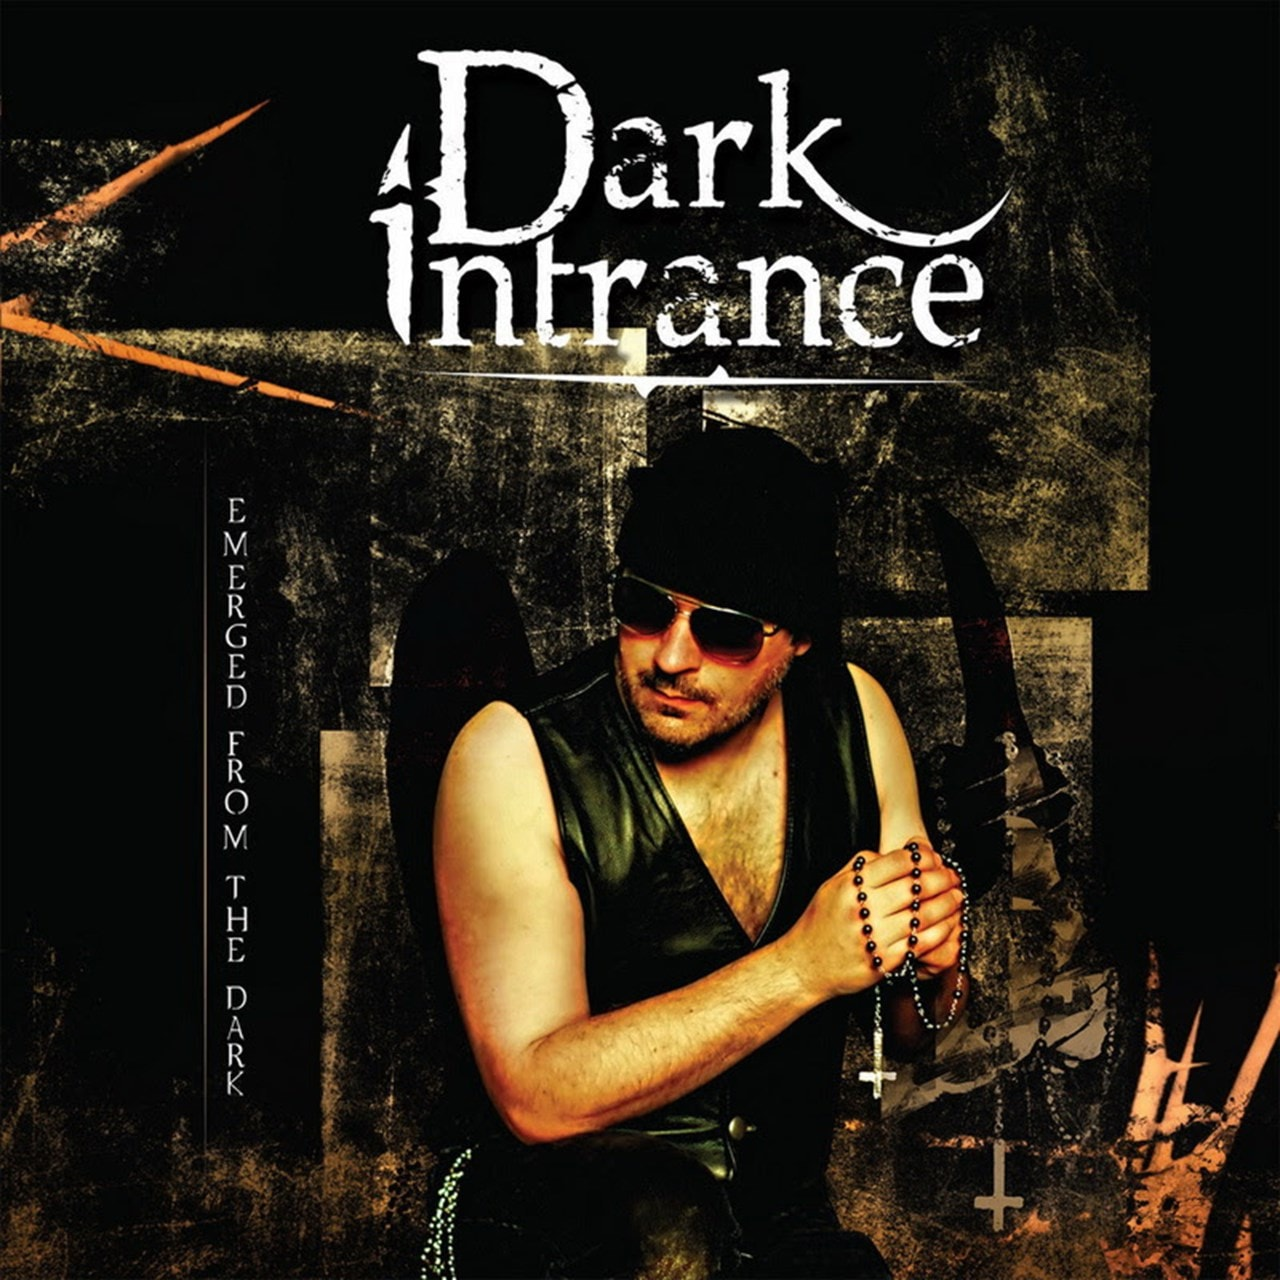 Emerged from the Dark - 1